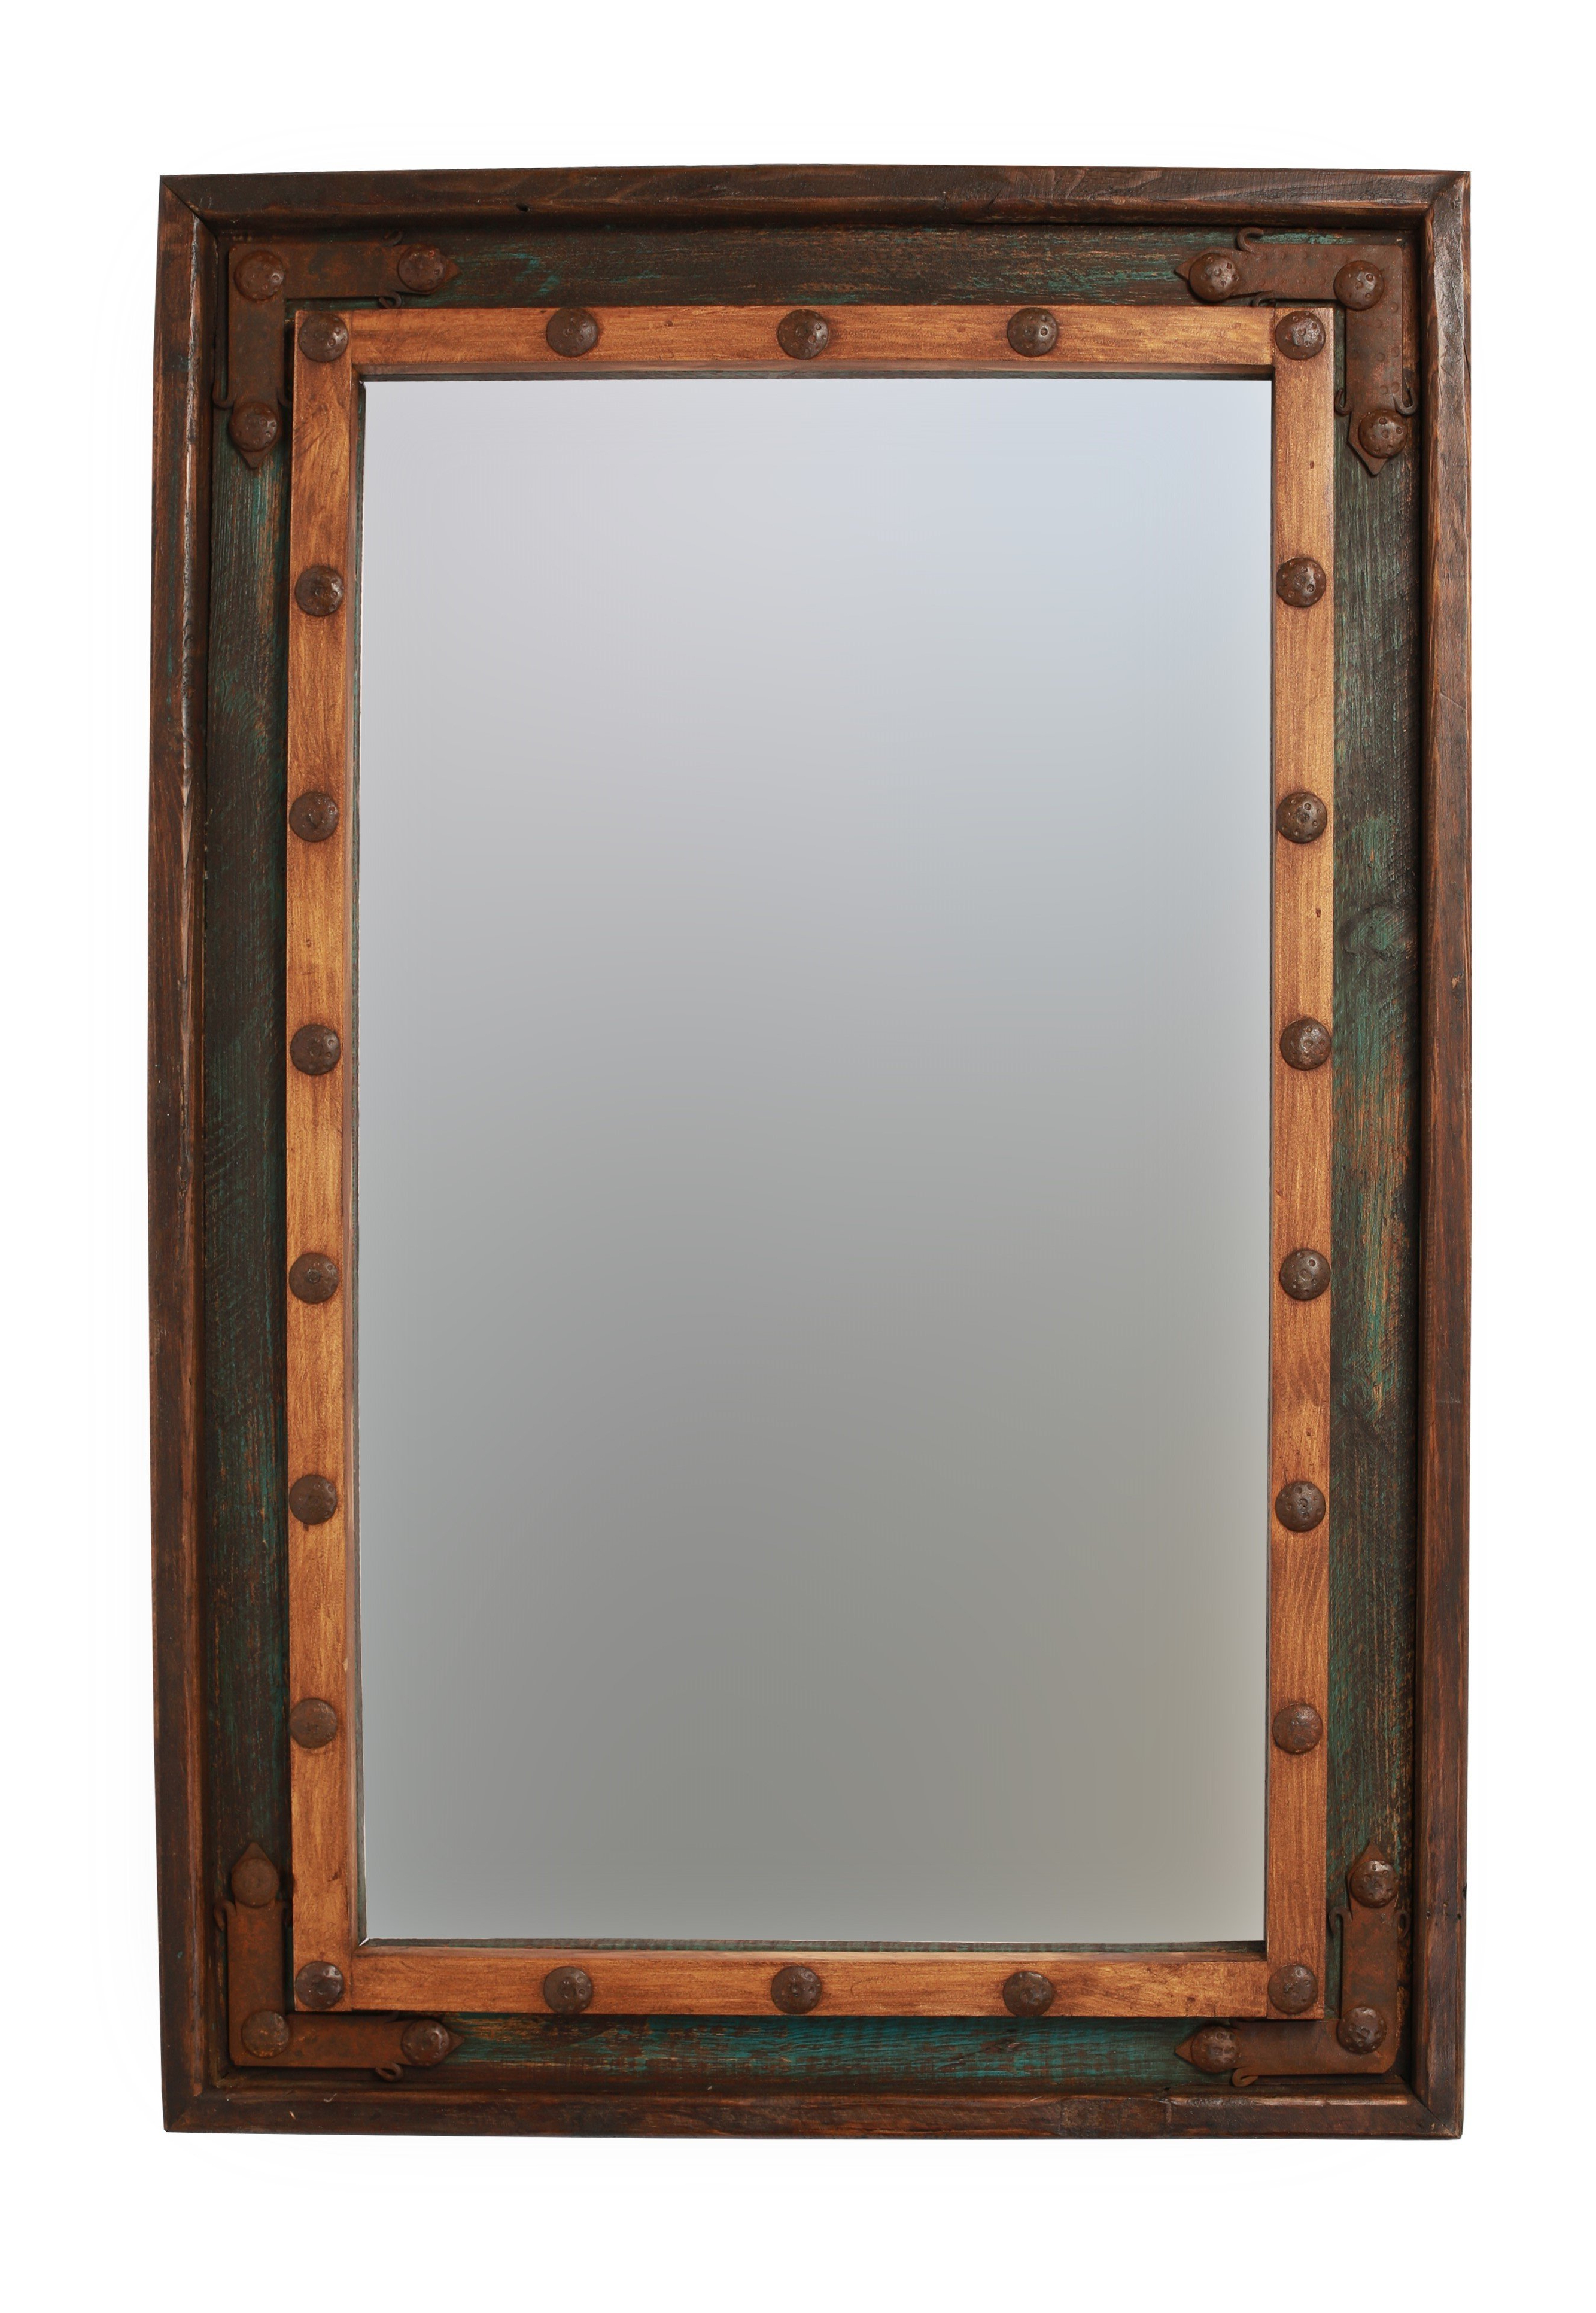 Current Islemade Rustic Distressed Bathroom/vanity Mirror With Kristy Rectangular Beveled Vanity Mirrors In Distressed (View 2 of 20)